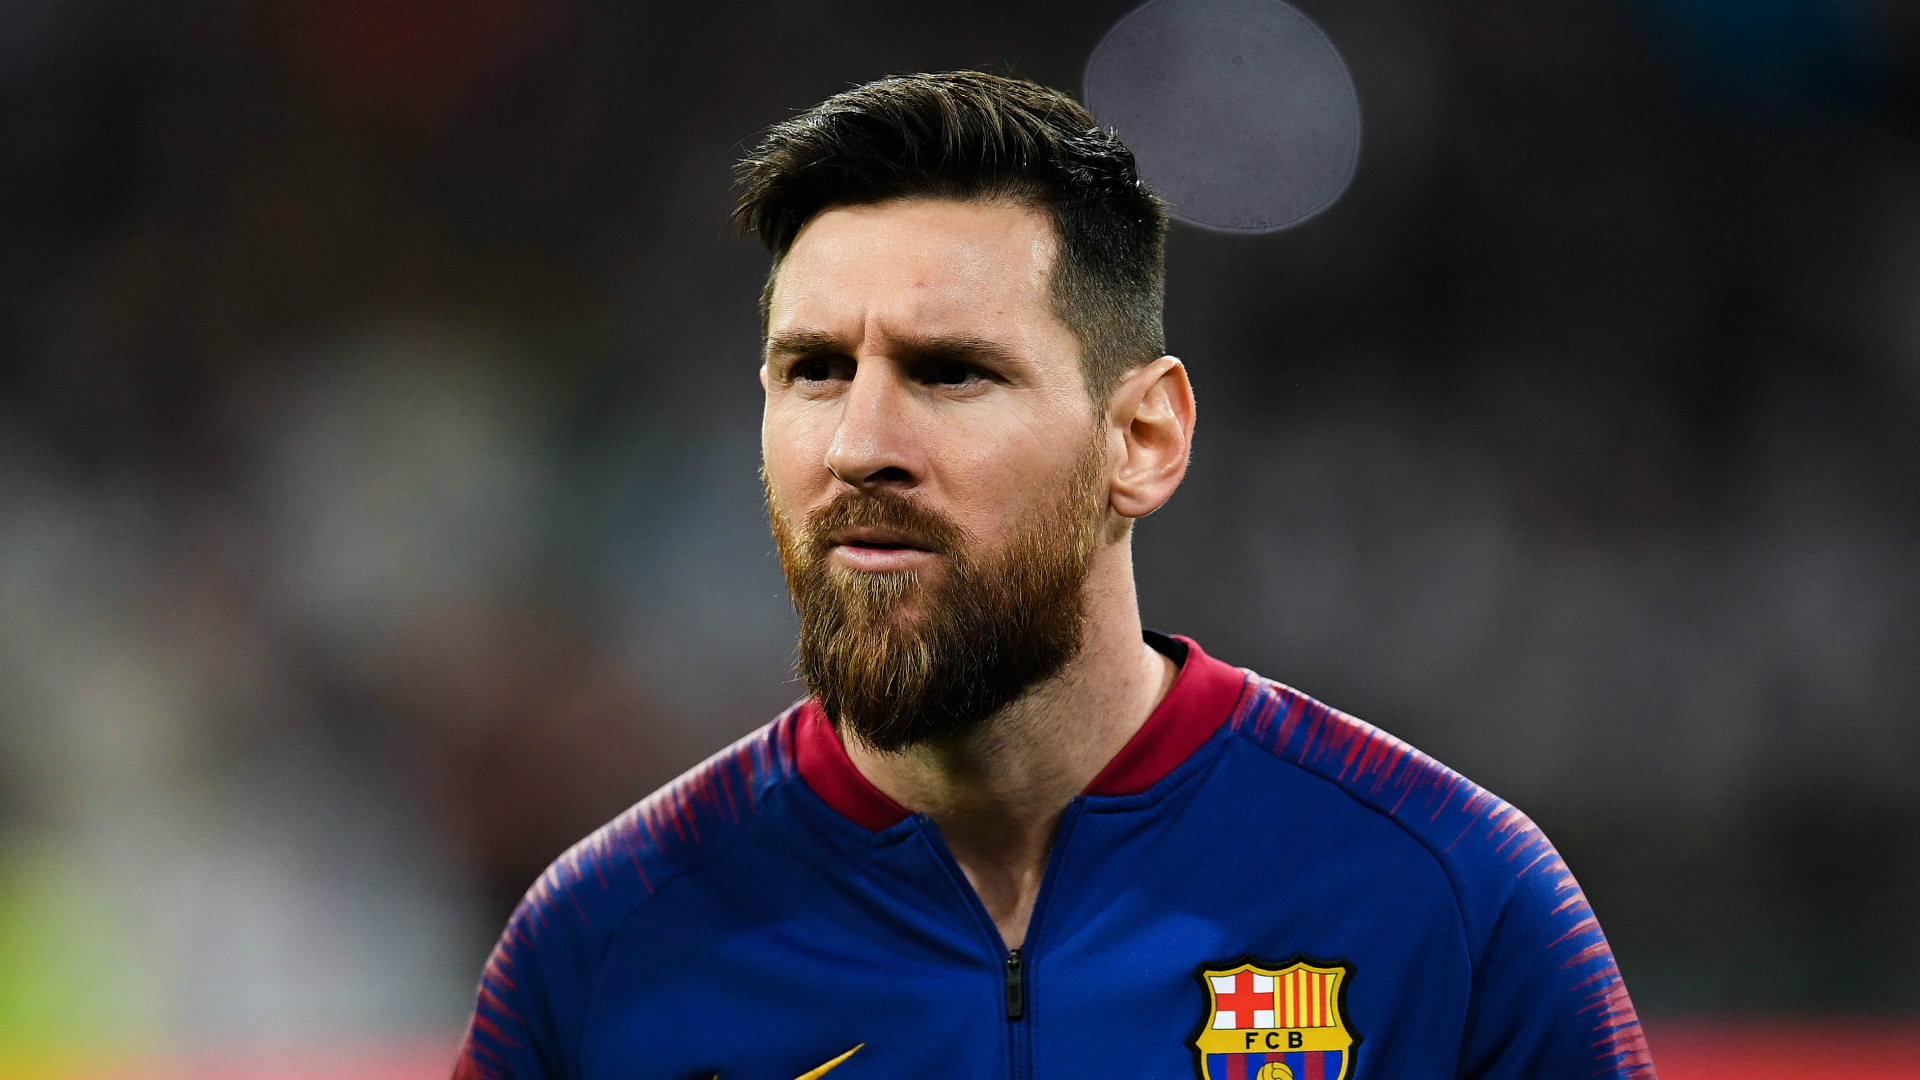 Messi looks like he has 'one foot out of the door' - Carrasco